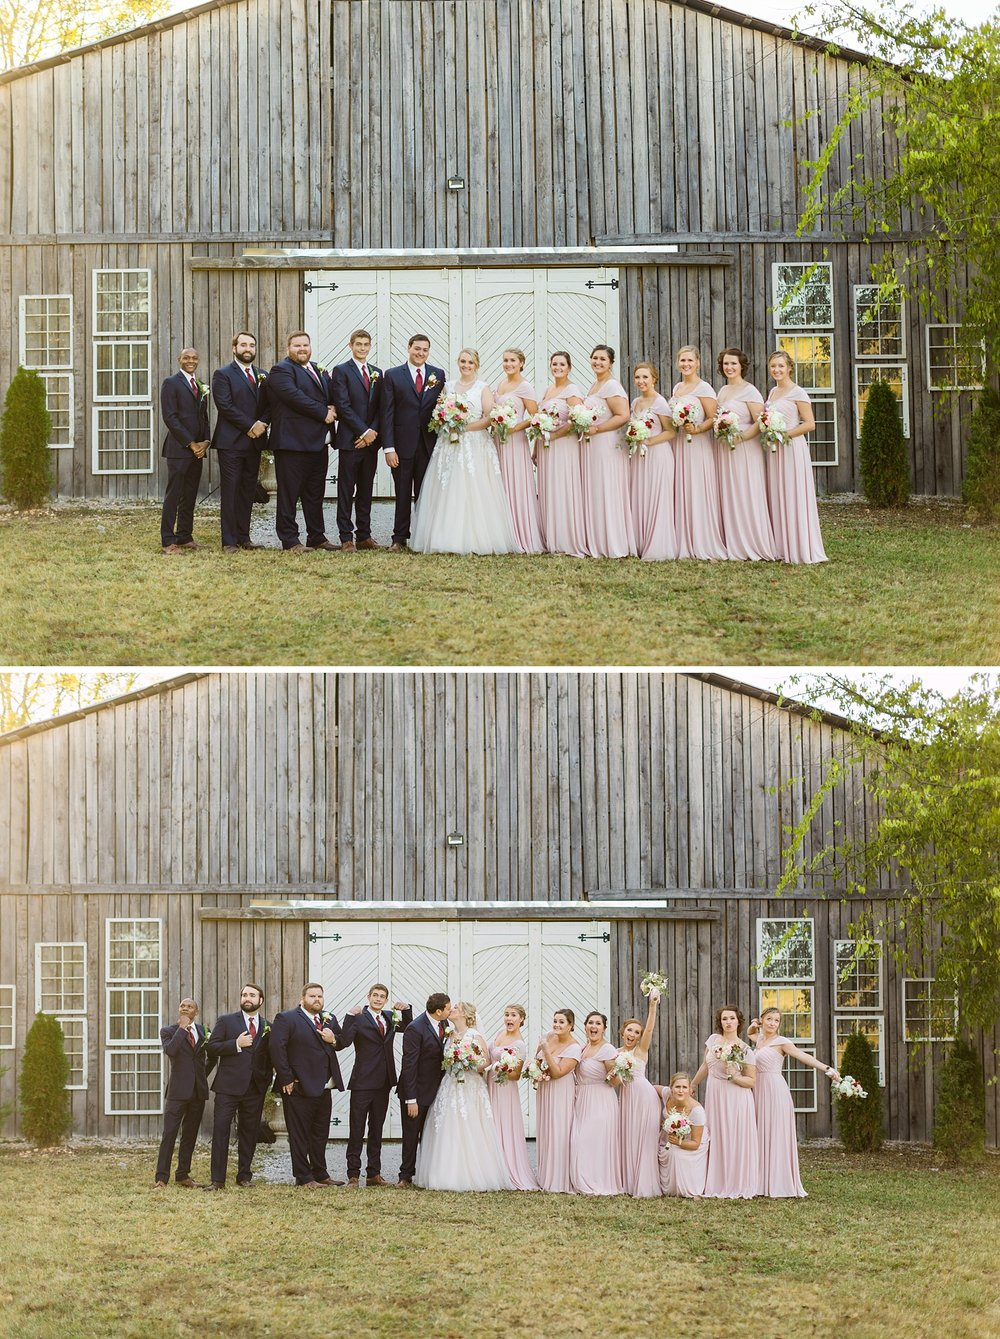 wedding-party-meadow-hill-farm-tn.jpg